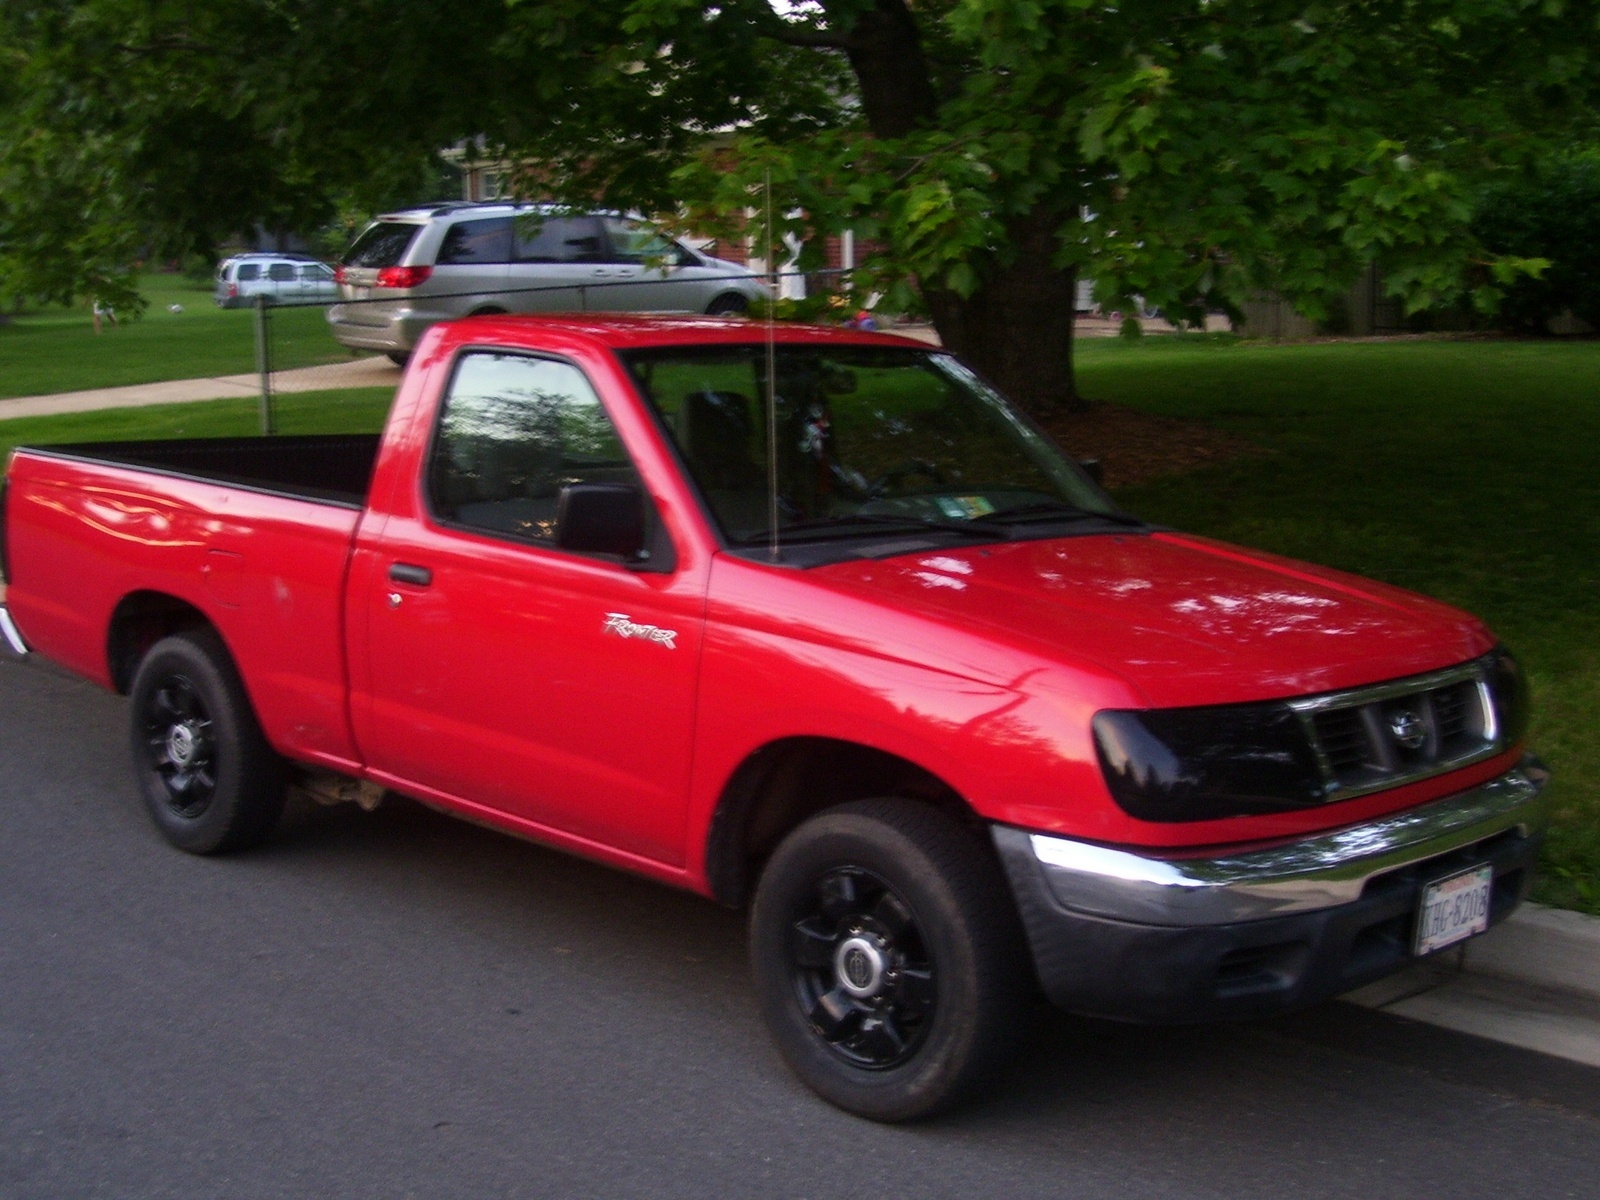 2000 Nissan Frontier Lifted >> 1999 Nissan Frontier - Overview - CarGurus